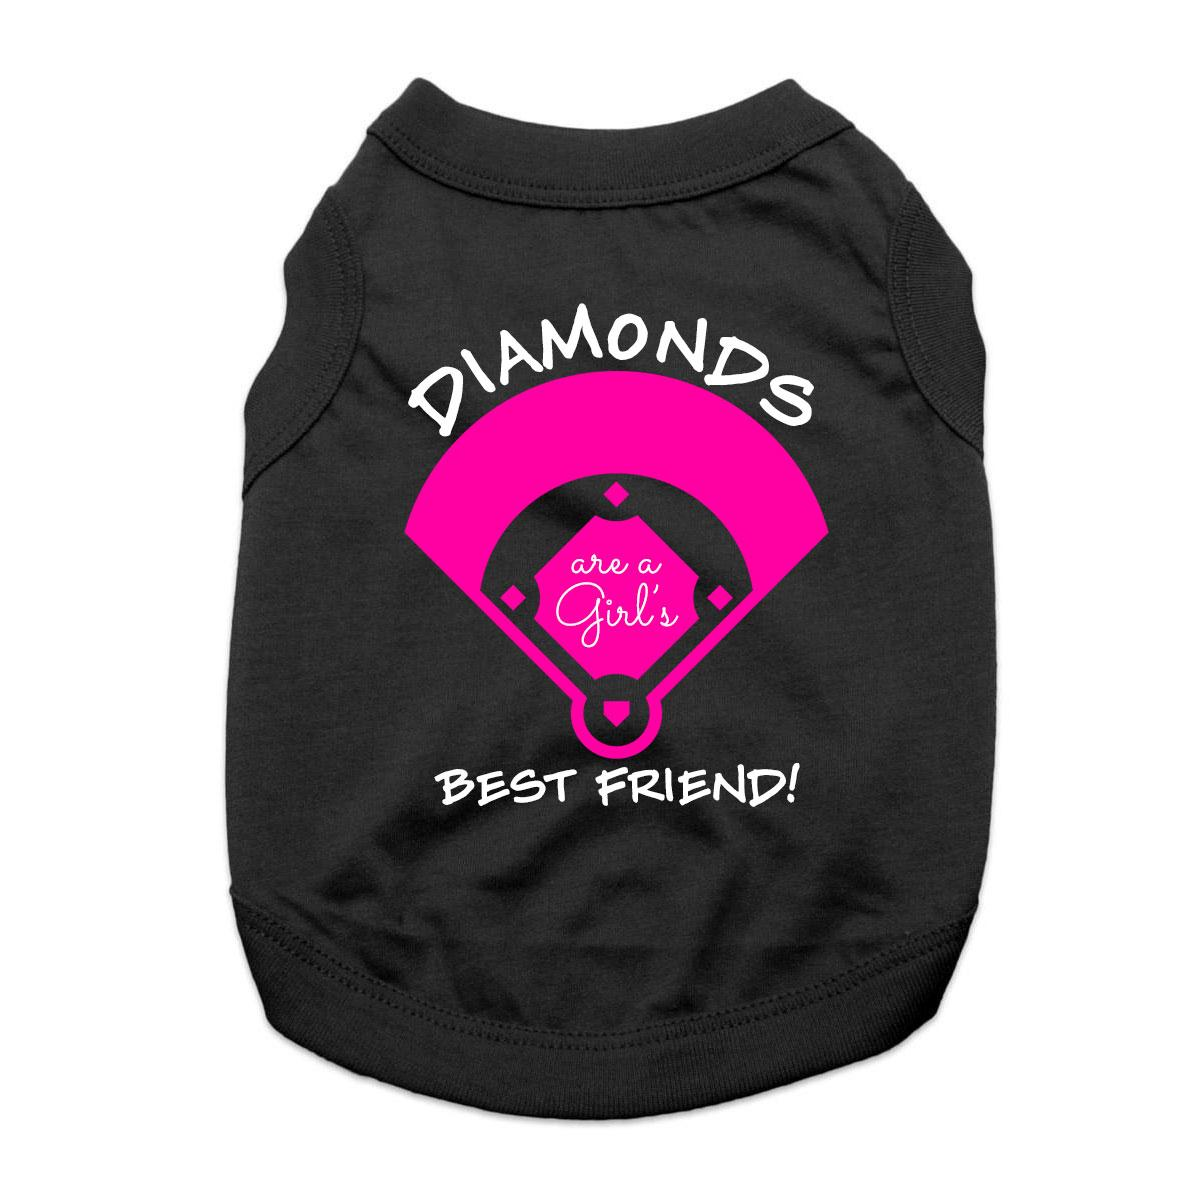 Diamonds are a Girl's Best Friend Dog Shirt - Black